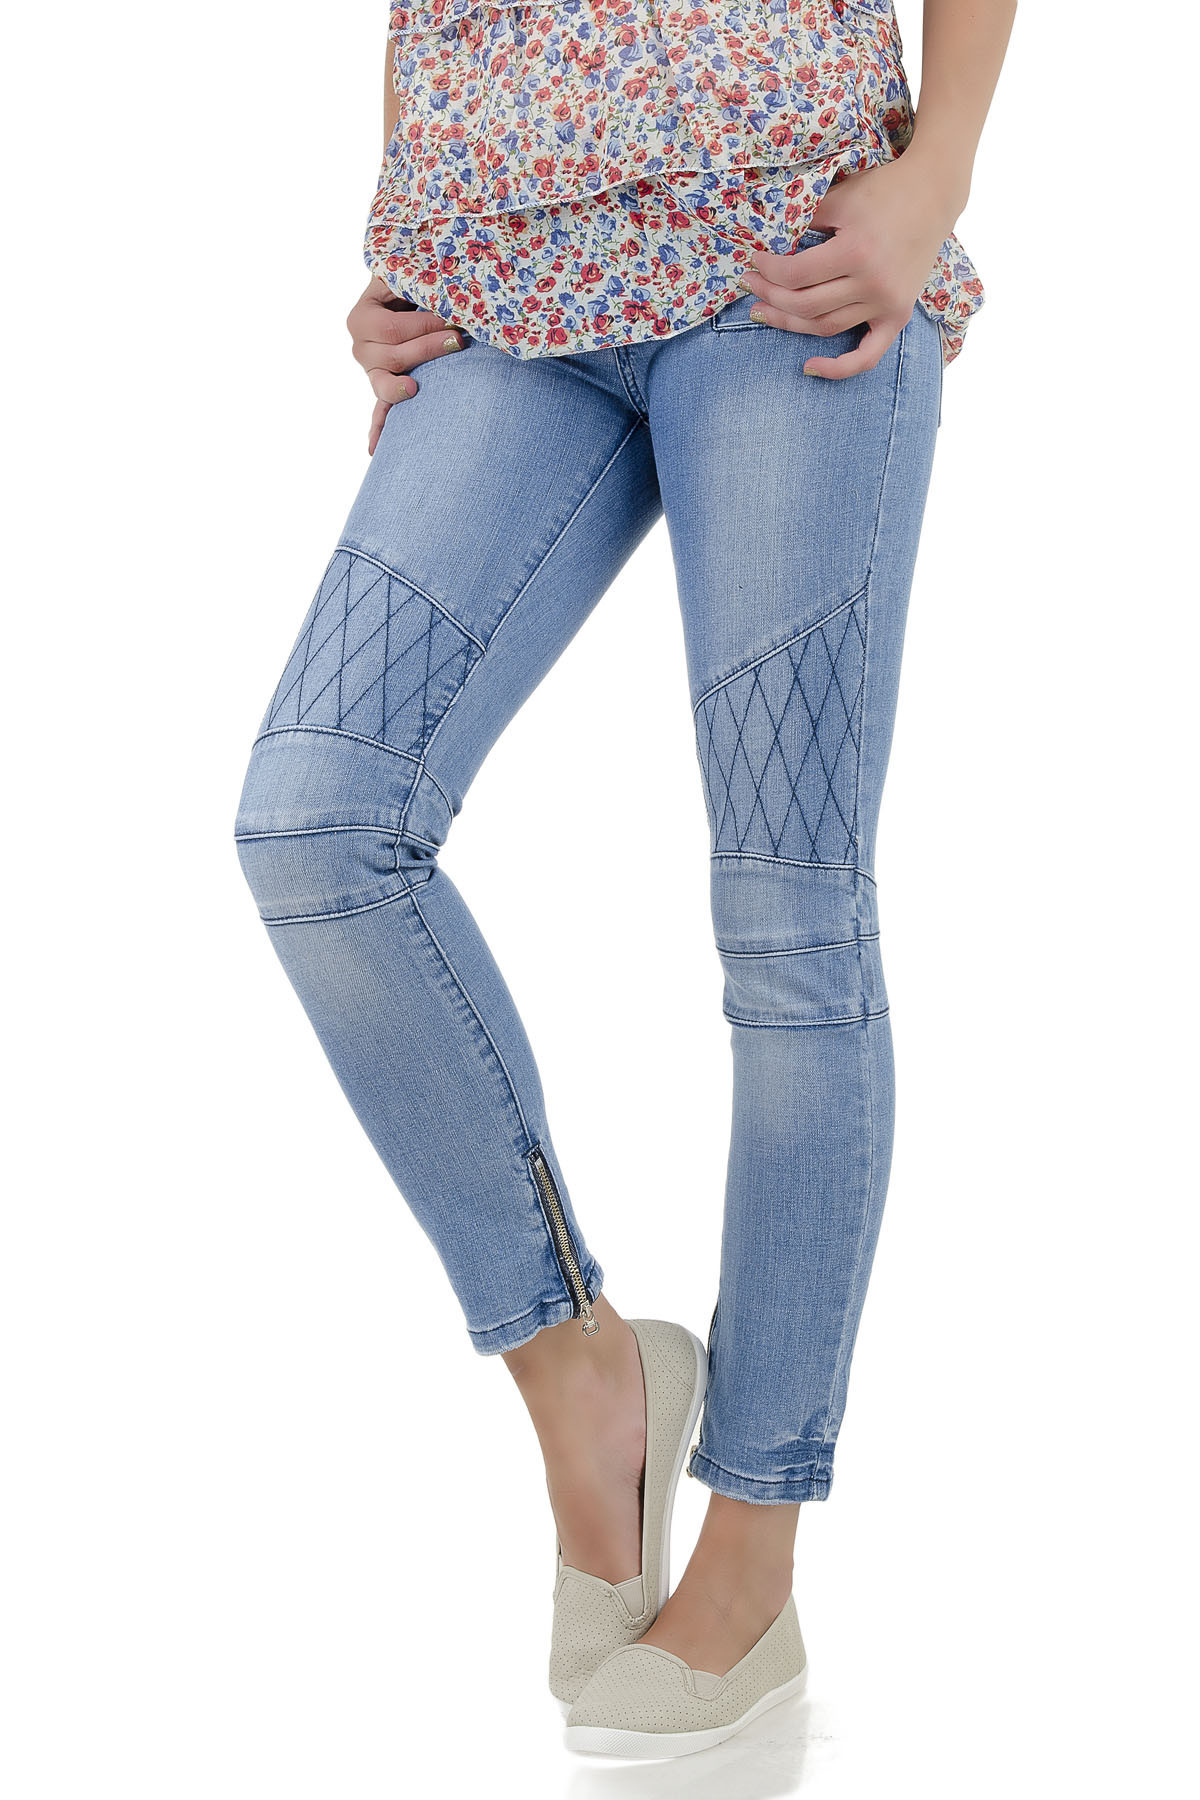 Jeans For Big Women